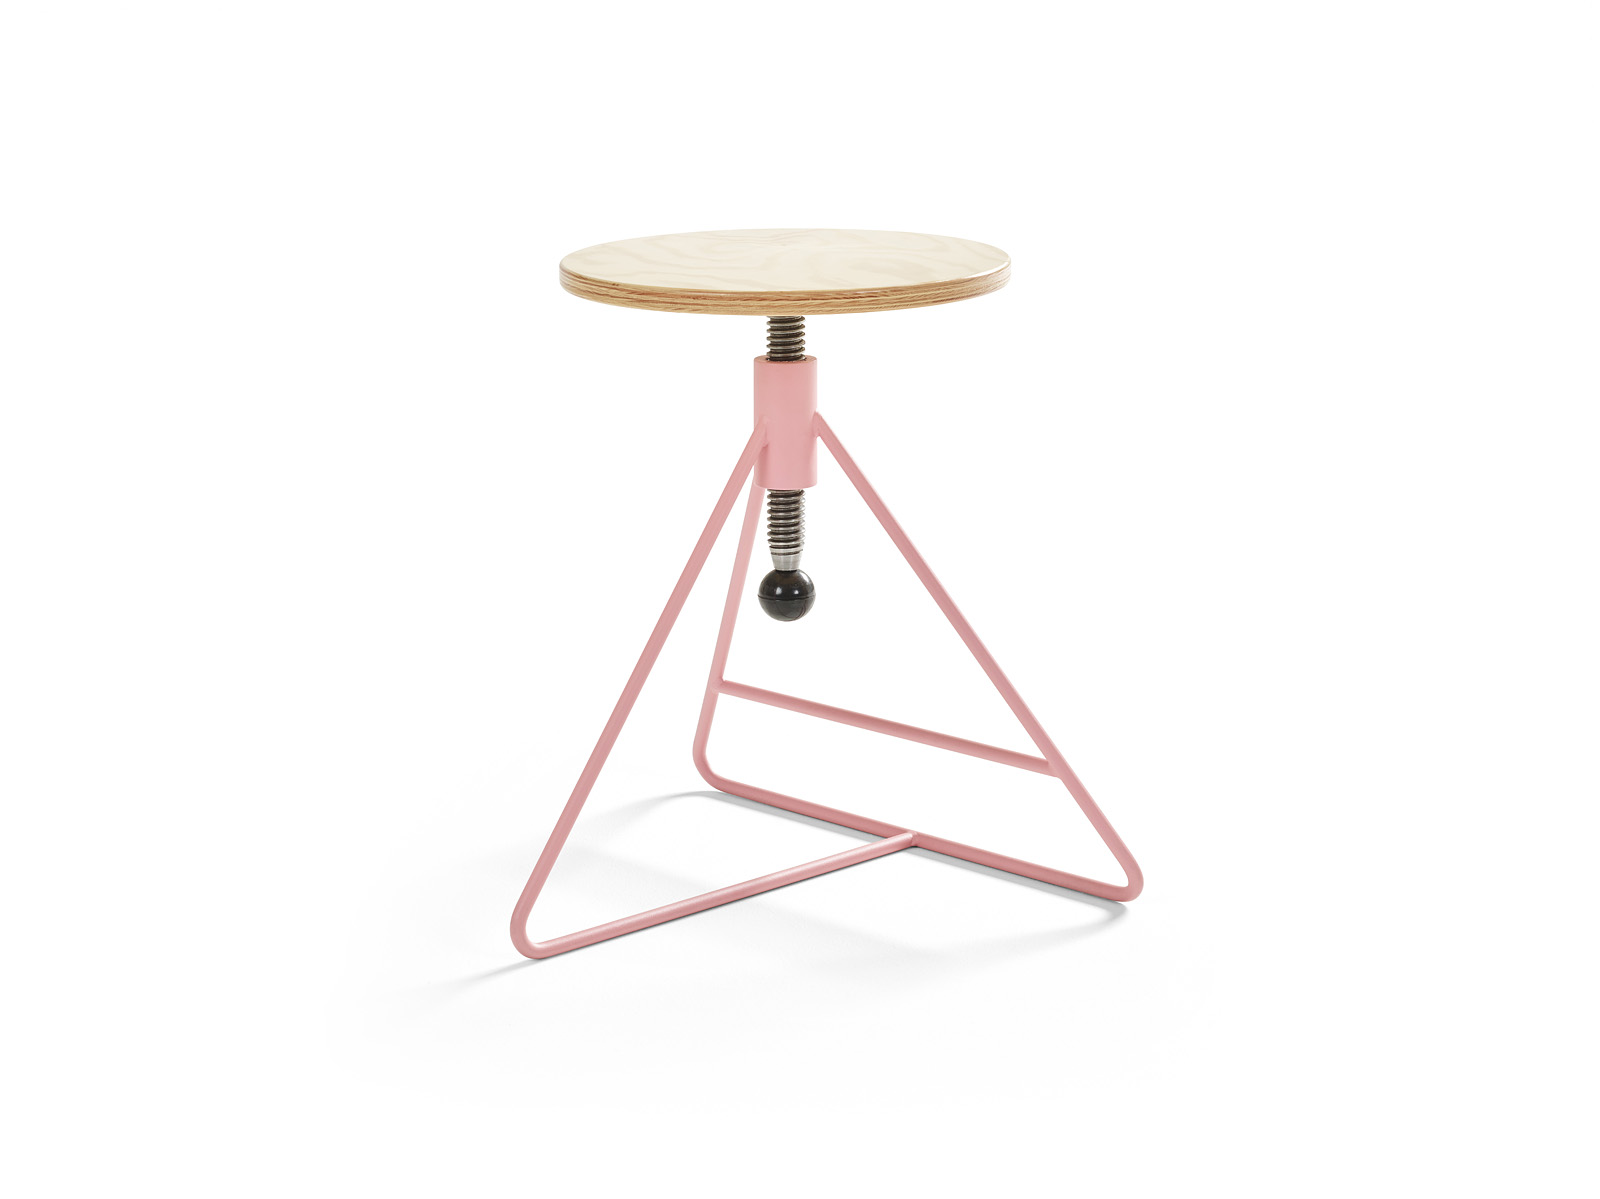 Spinner stool images